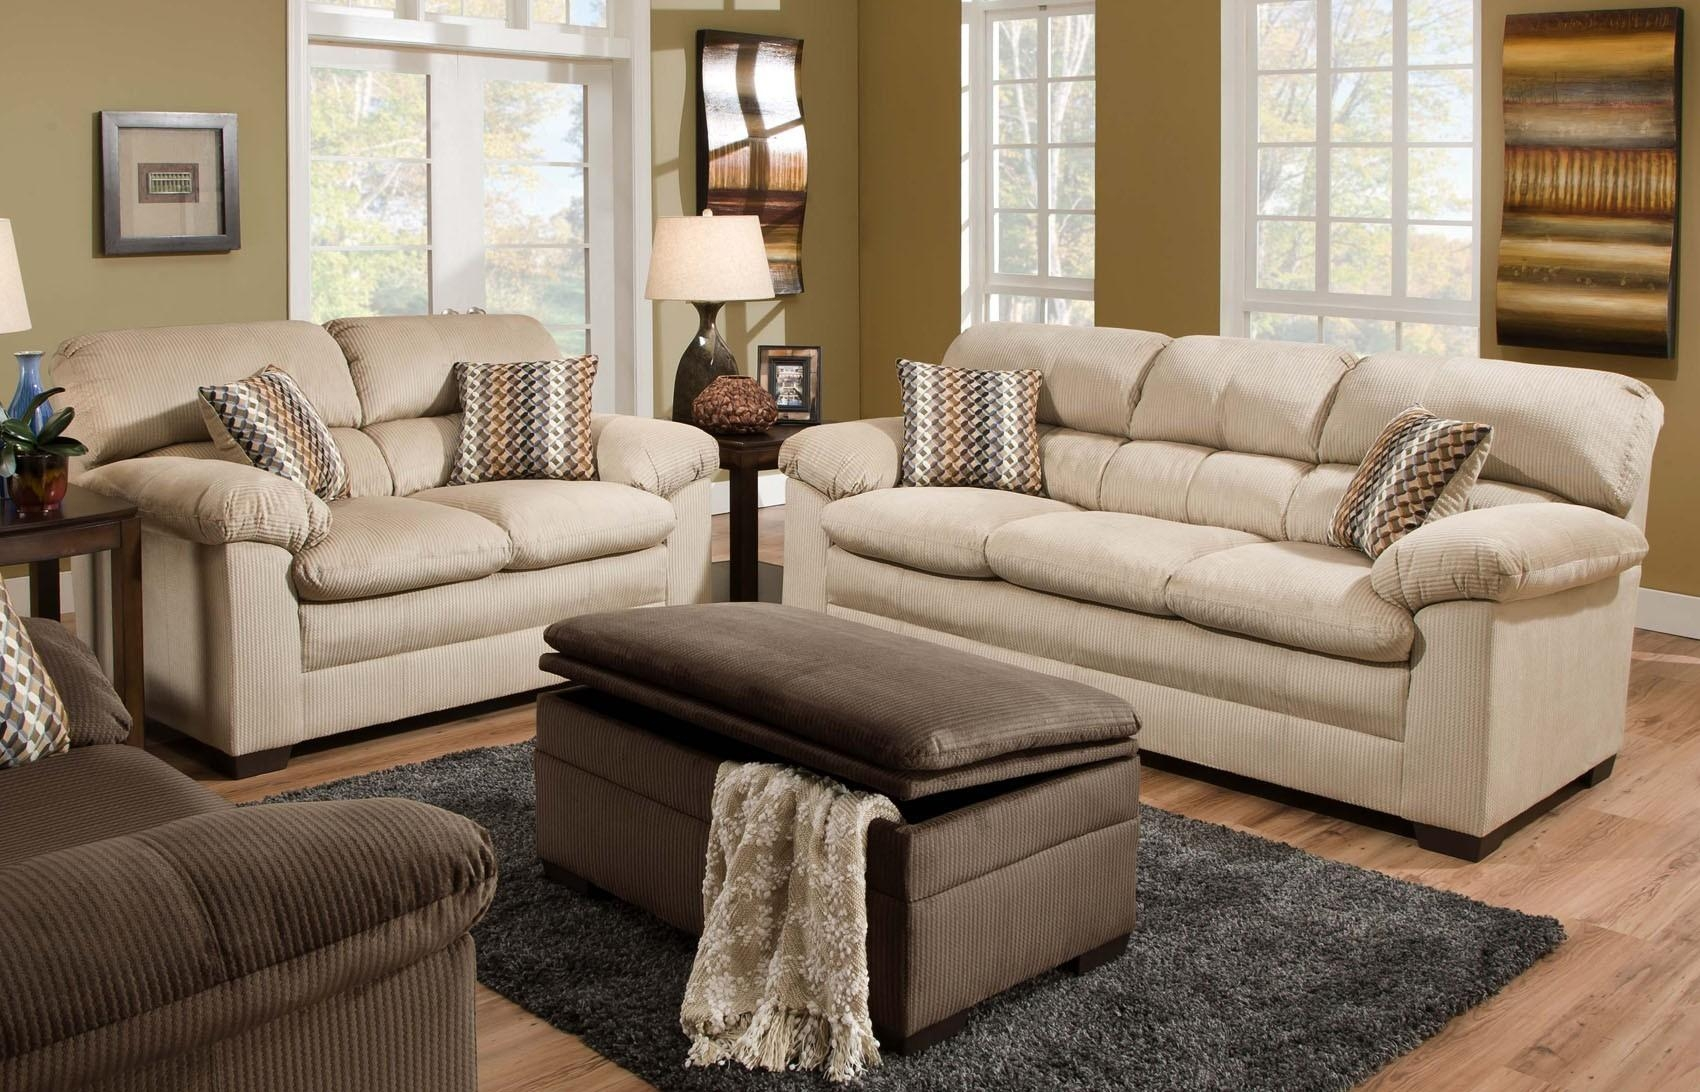 Lakewood Oversized Sofa Loveseat Set Beige Orange County Ca In Sofas Orange County (View 5 of 20)